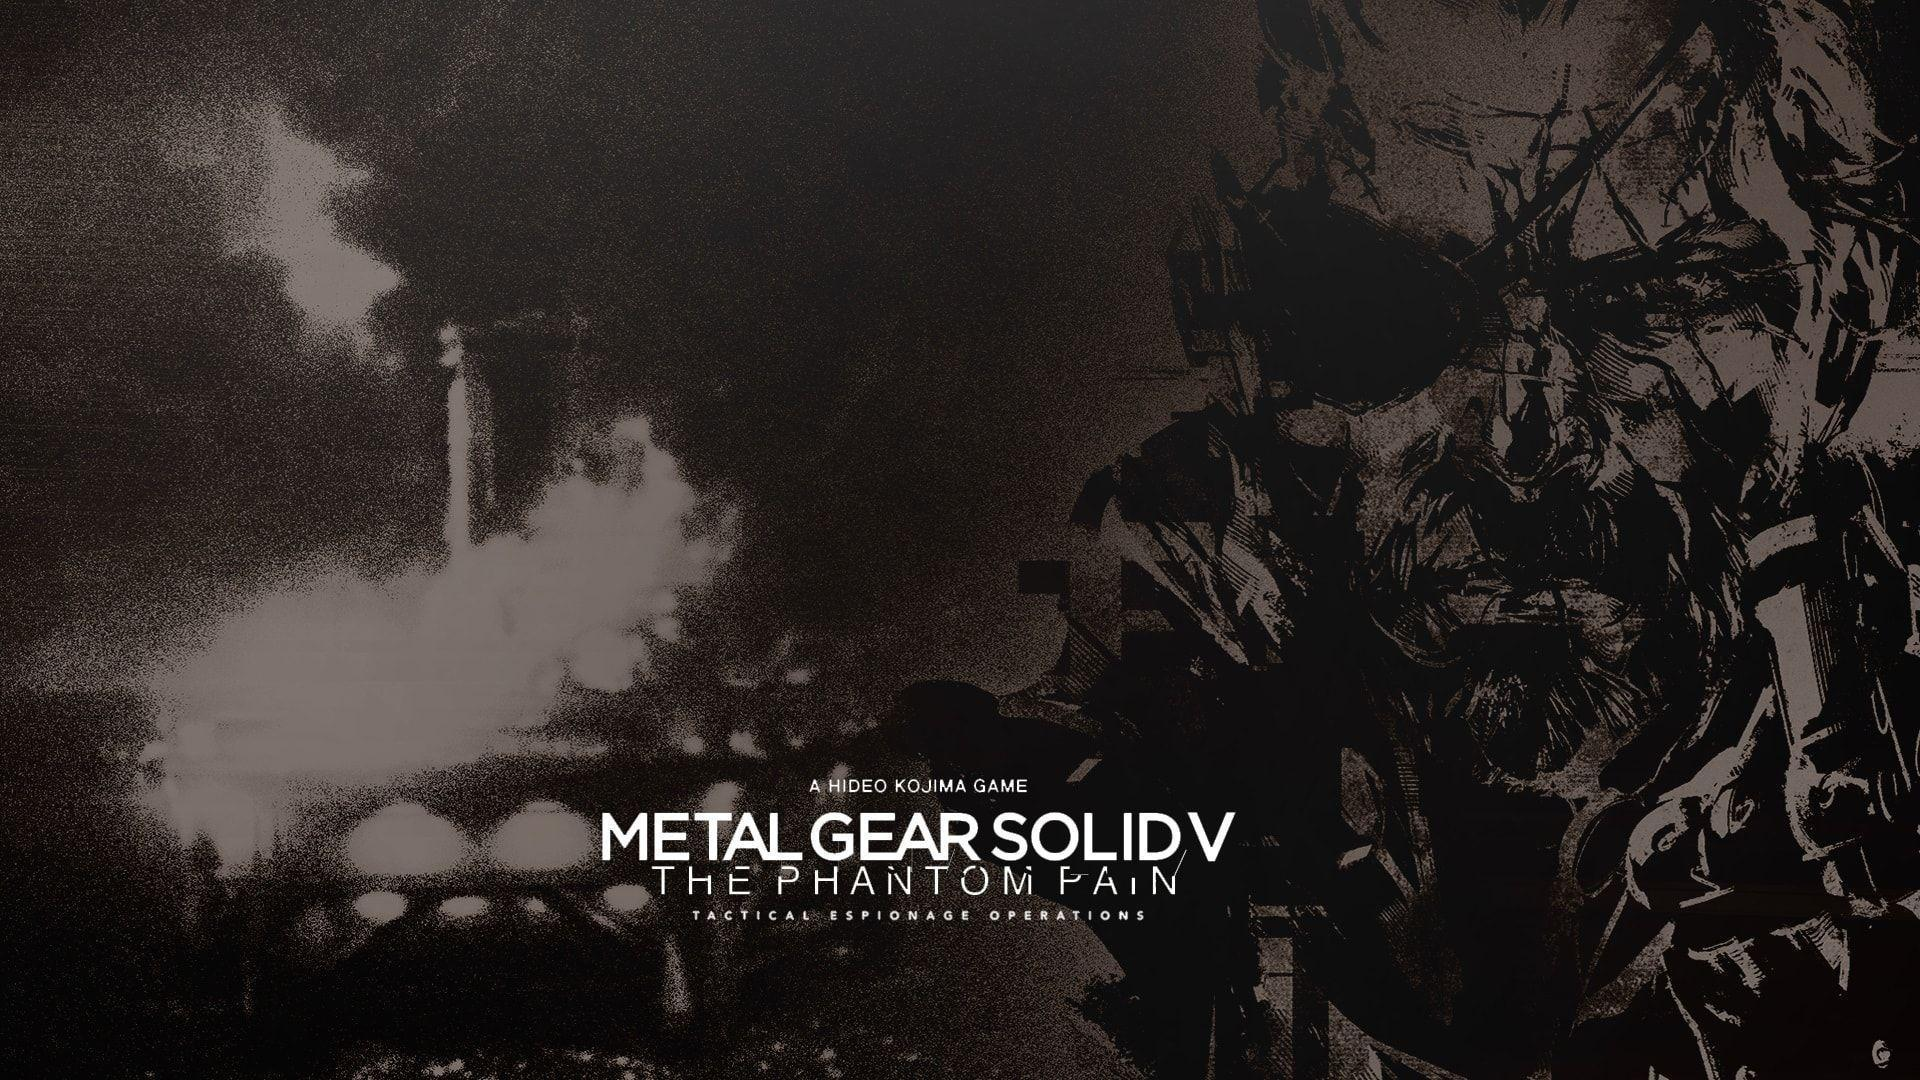 Metal Gear Solid V: The Phantom Pain HD Desktop Wallpapers ...